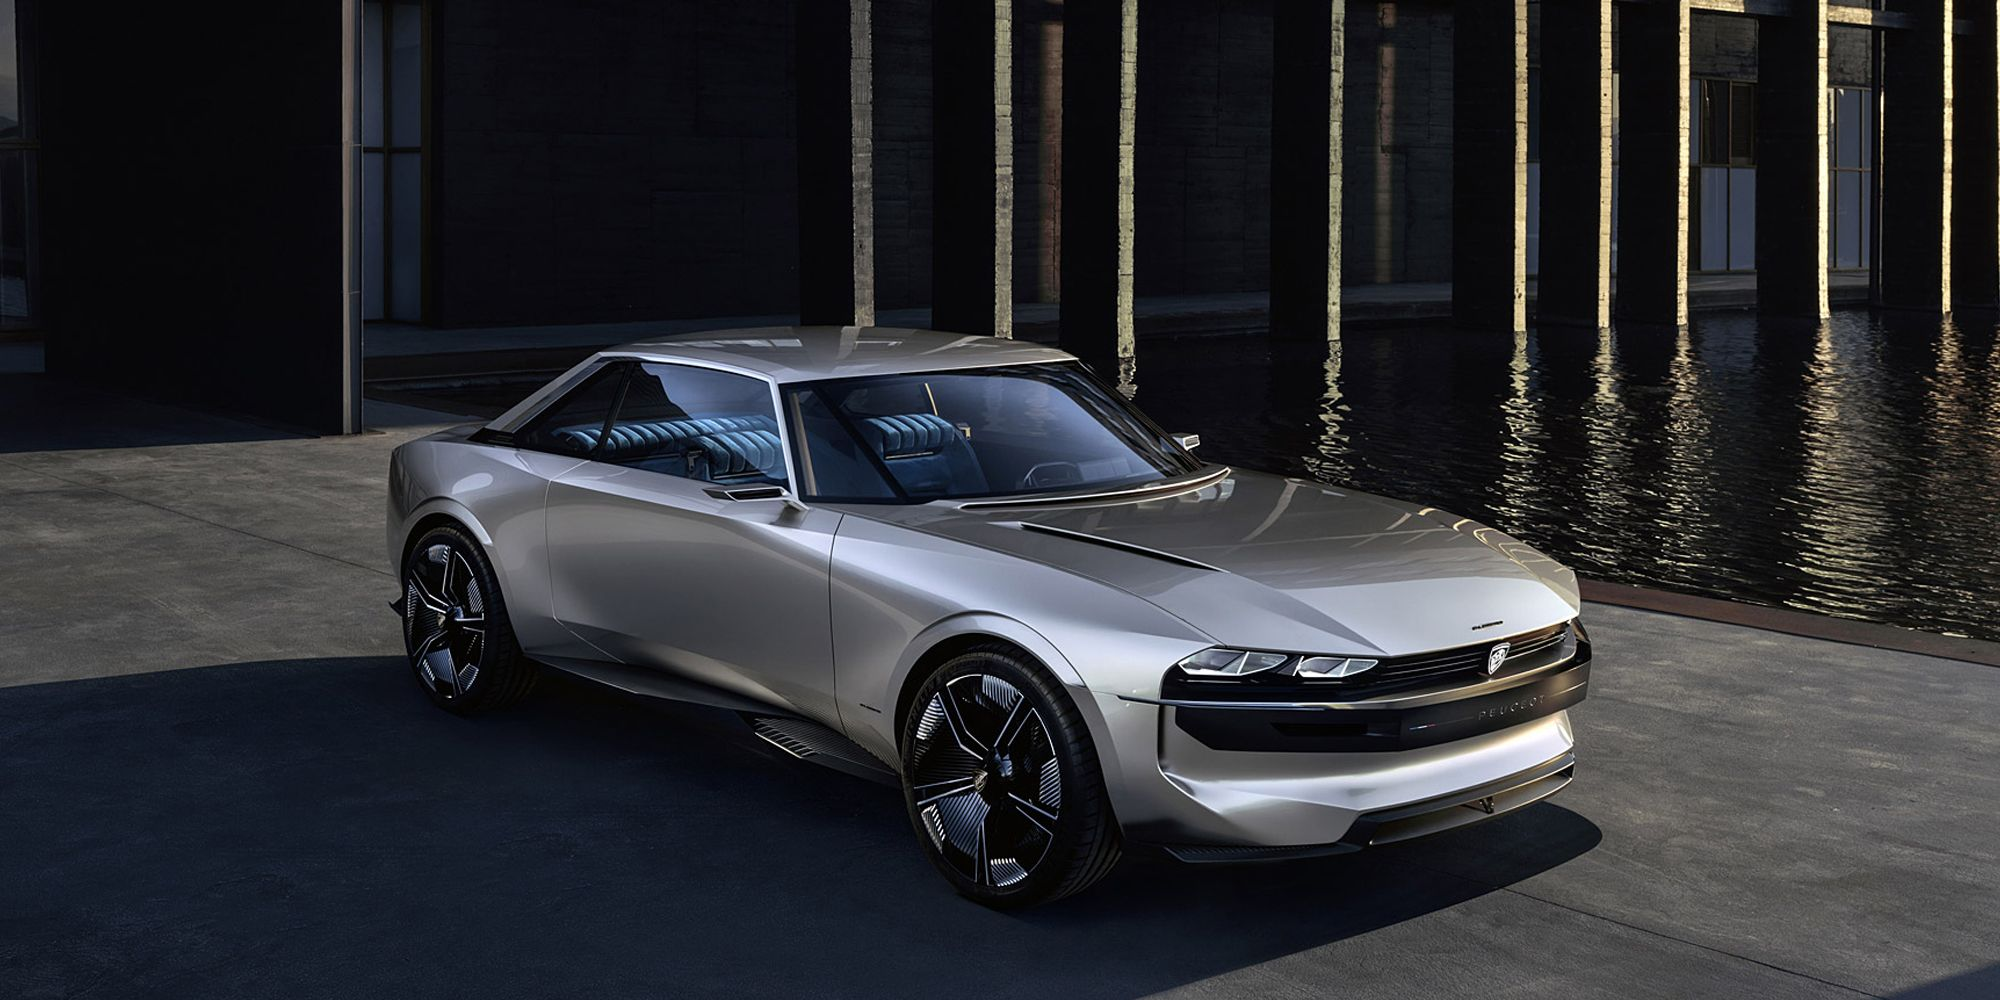 Peugeot Returning To The U.S. Market In 2023